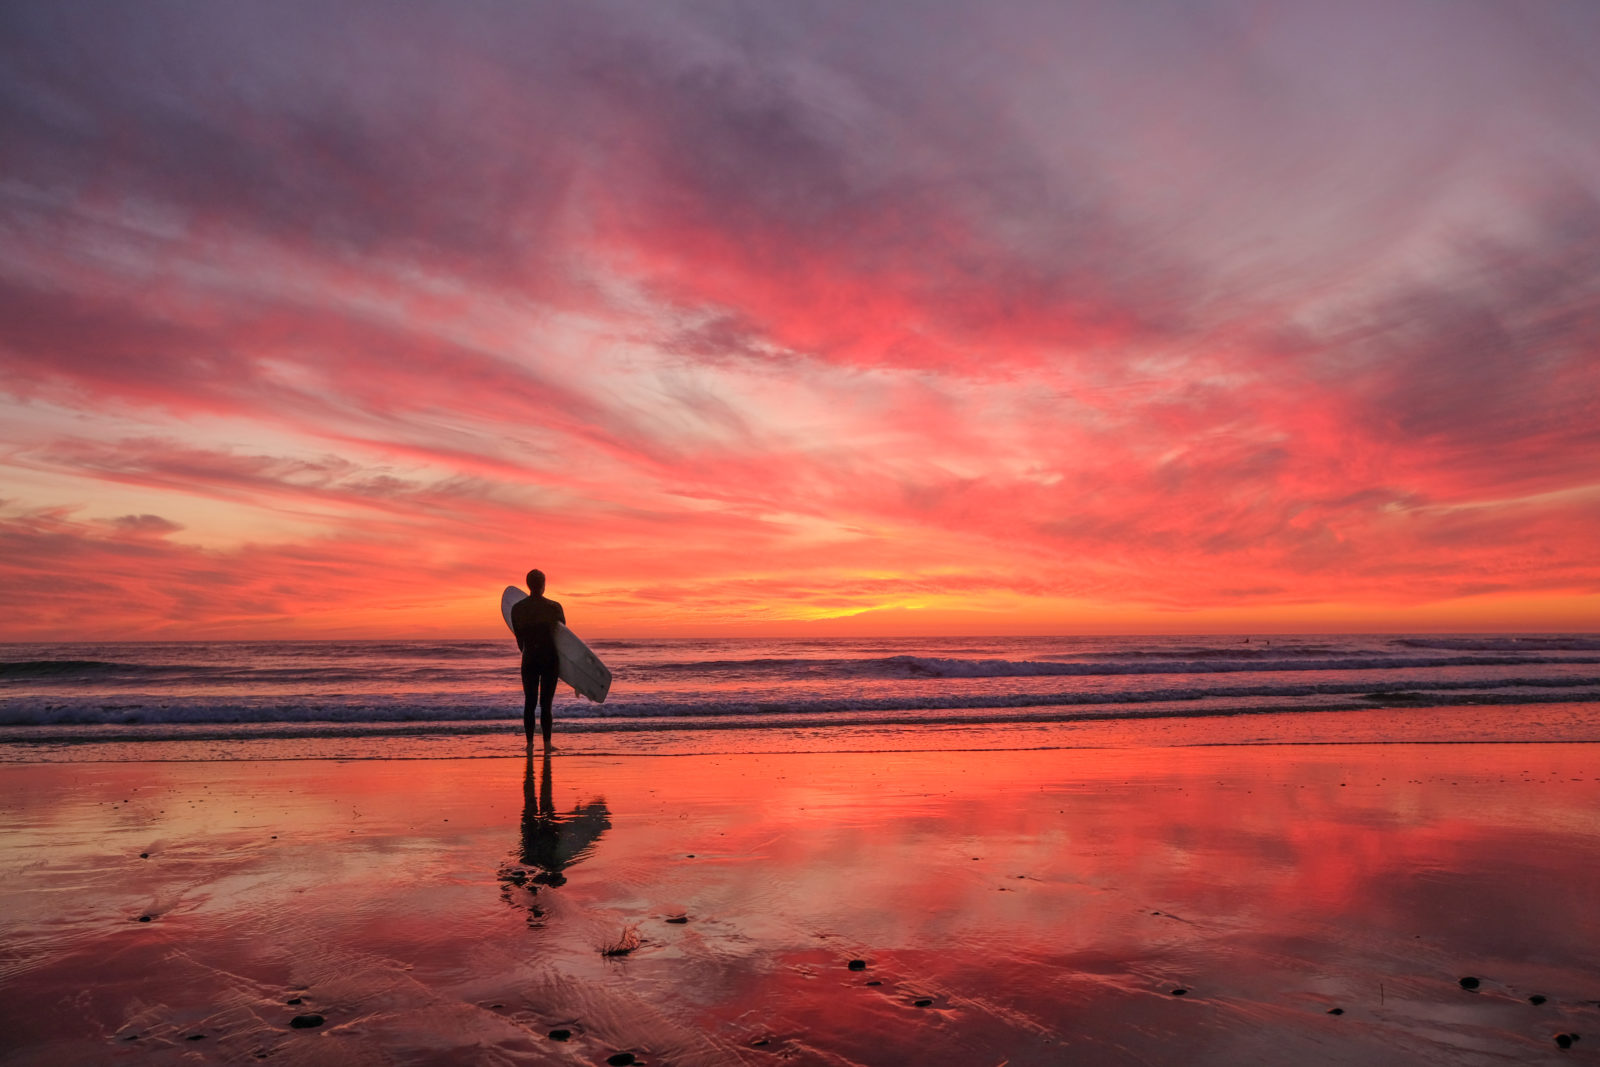 A Surfer Sunset